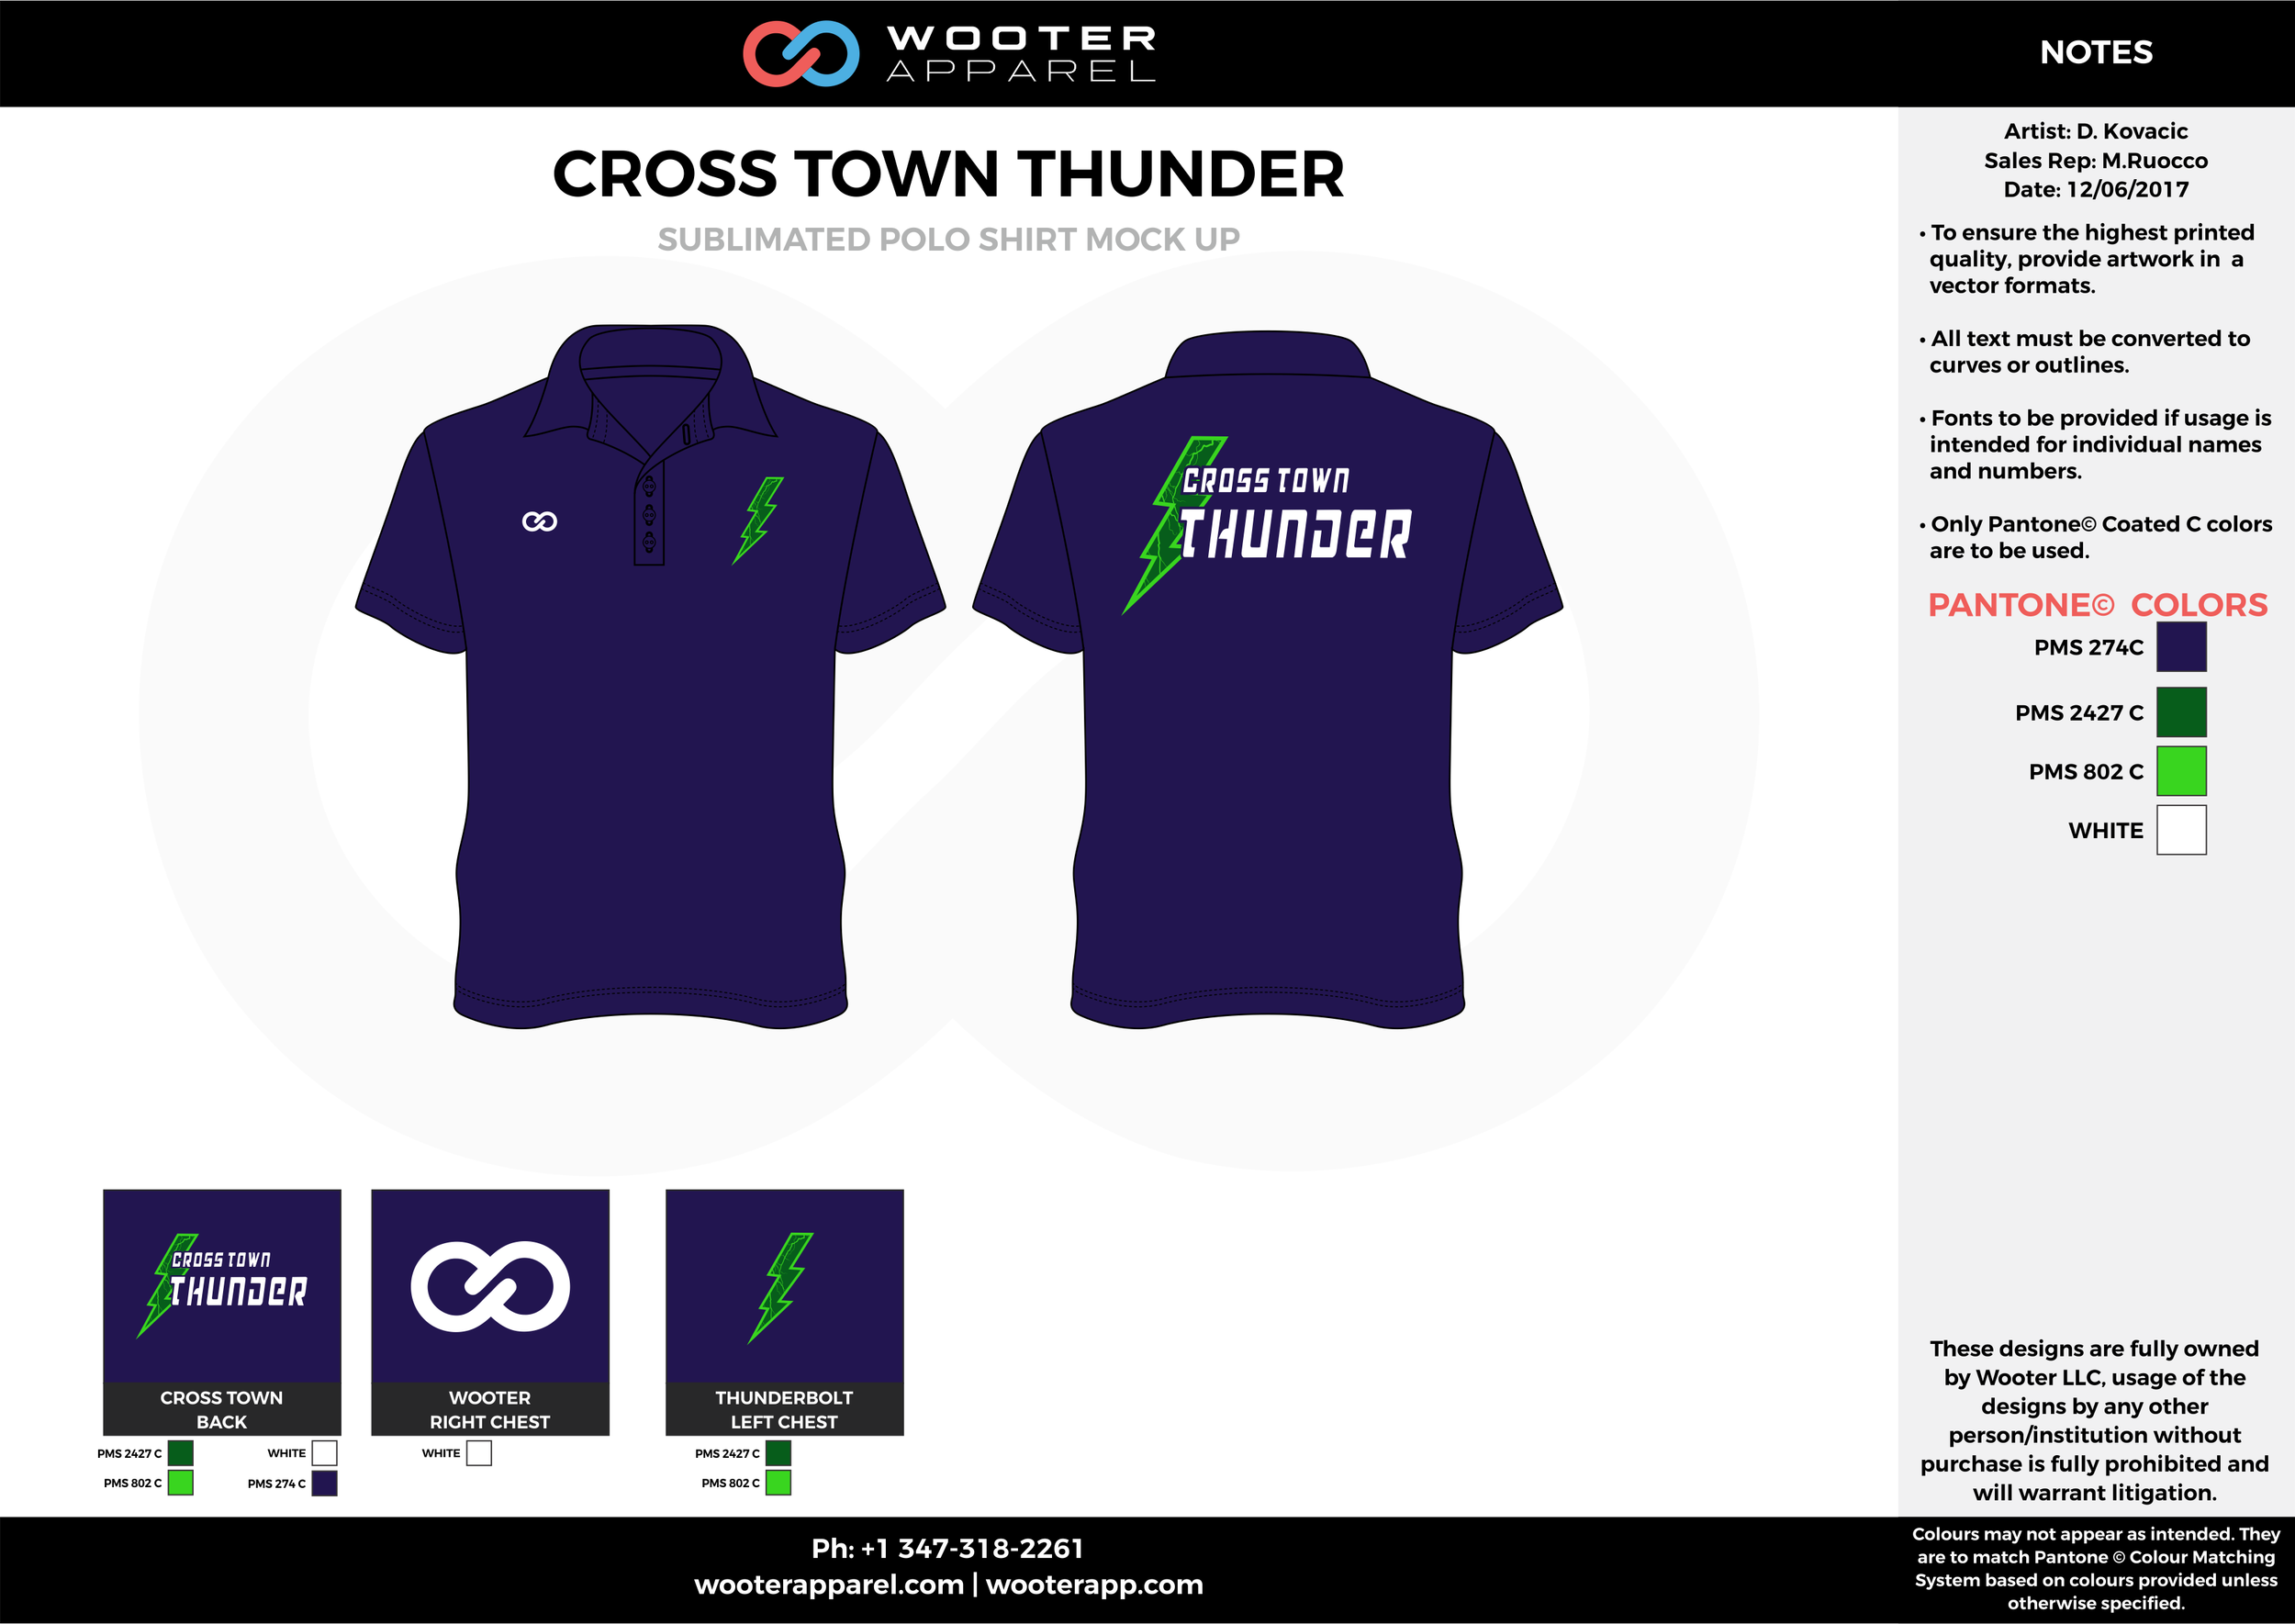 CROSS TOWN THUNDER Blue Green and White Sublimated Polo Shirts